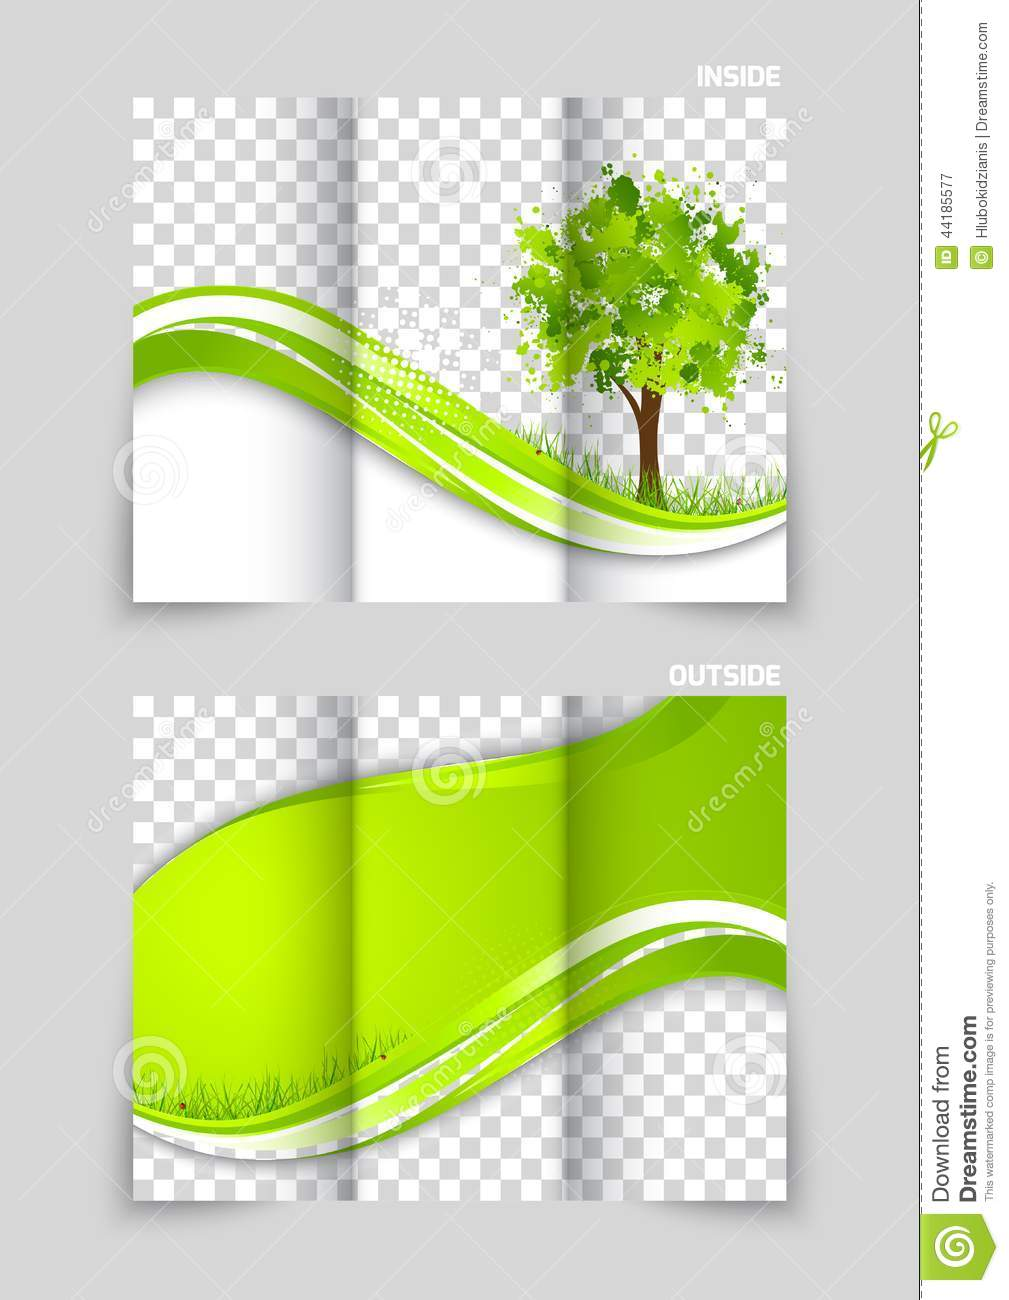 Trifold Brochure Template Design Stock Vector Illustration Of - Tri fold brochures templates